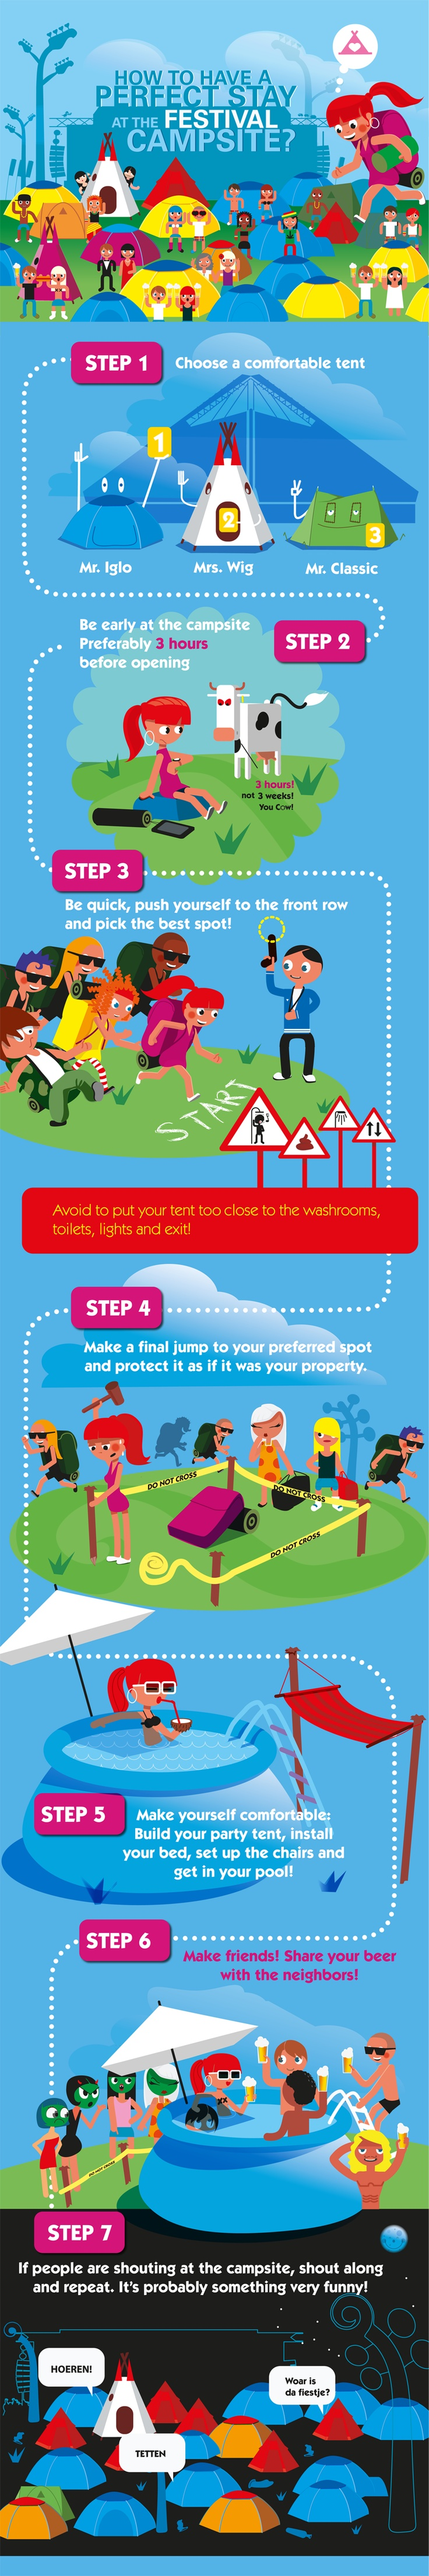 How to have a perfect stay at the festival campsite #infographic